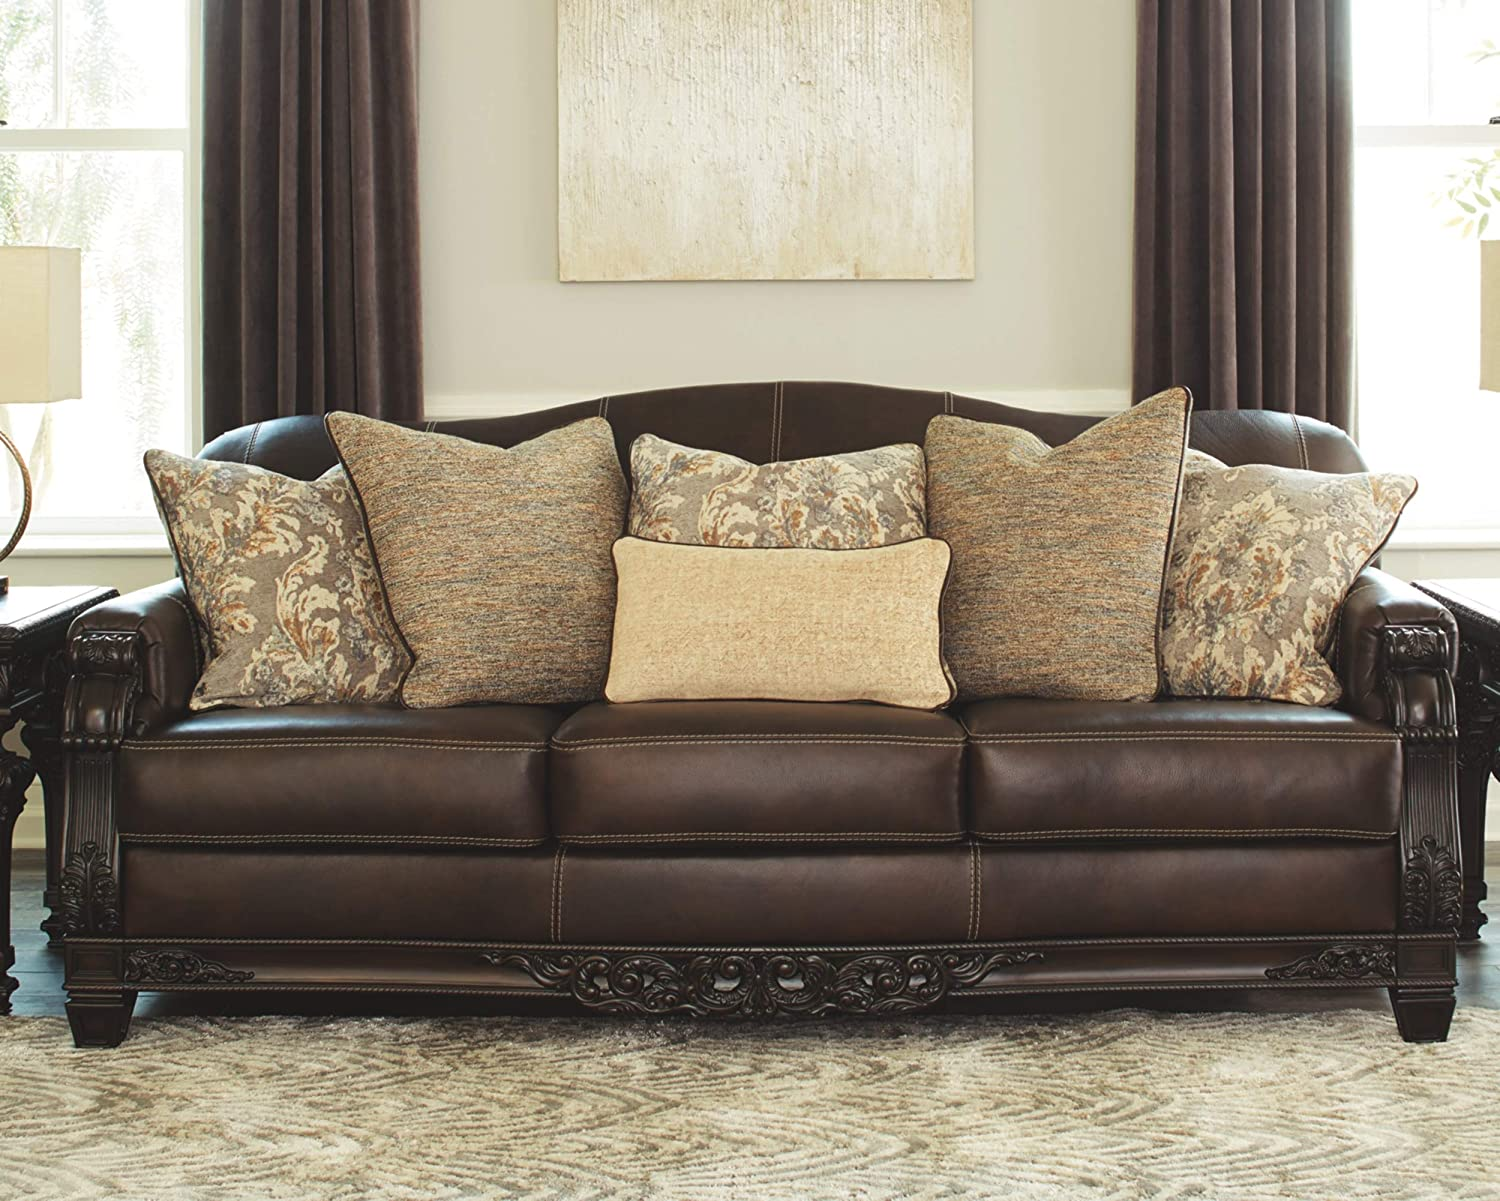 Whether you are moving and have items that need to be removed from the home, or want to upgrade your furniture, there's many reasons you need to get big items hauled off. Best Buy Faux Leather Sofa Review- Free Shipping